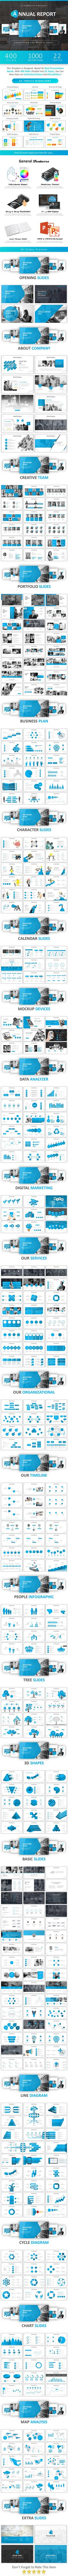 Annual Report Powerpoint - Business PowerPoint Templates